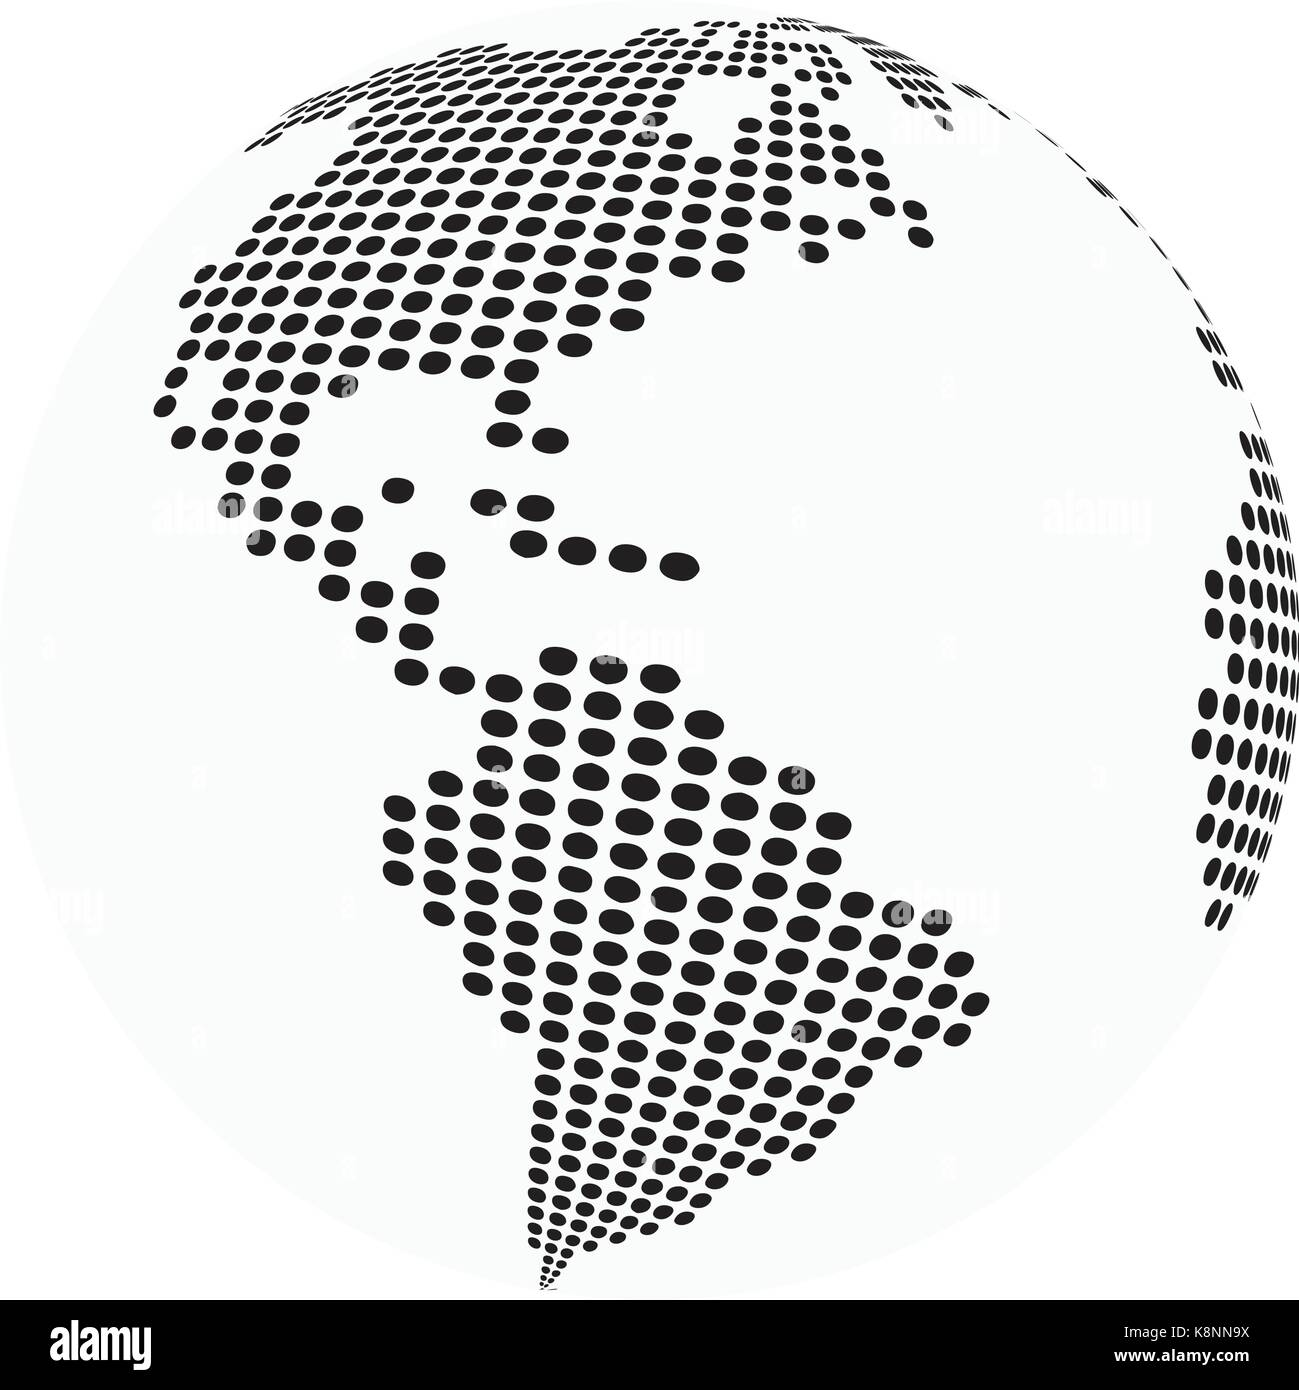 globe earth world map - abstract dotted vector background. Black and ...